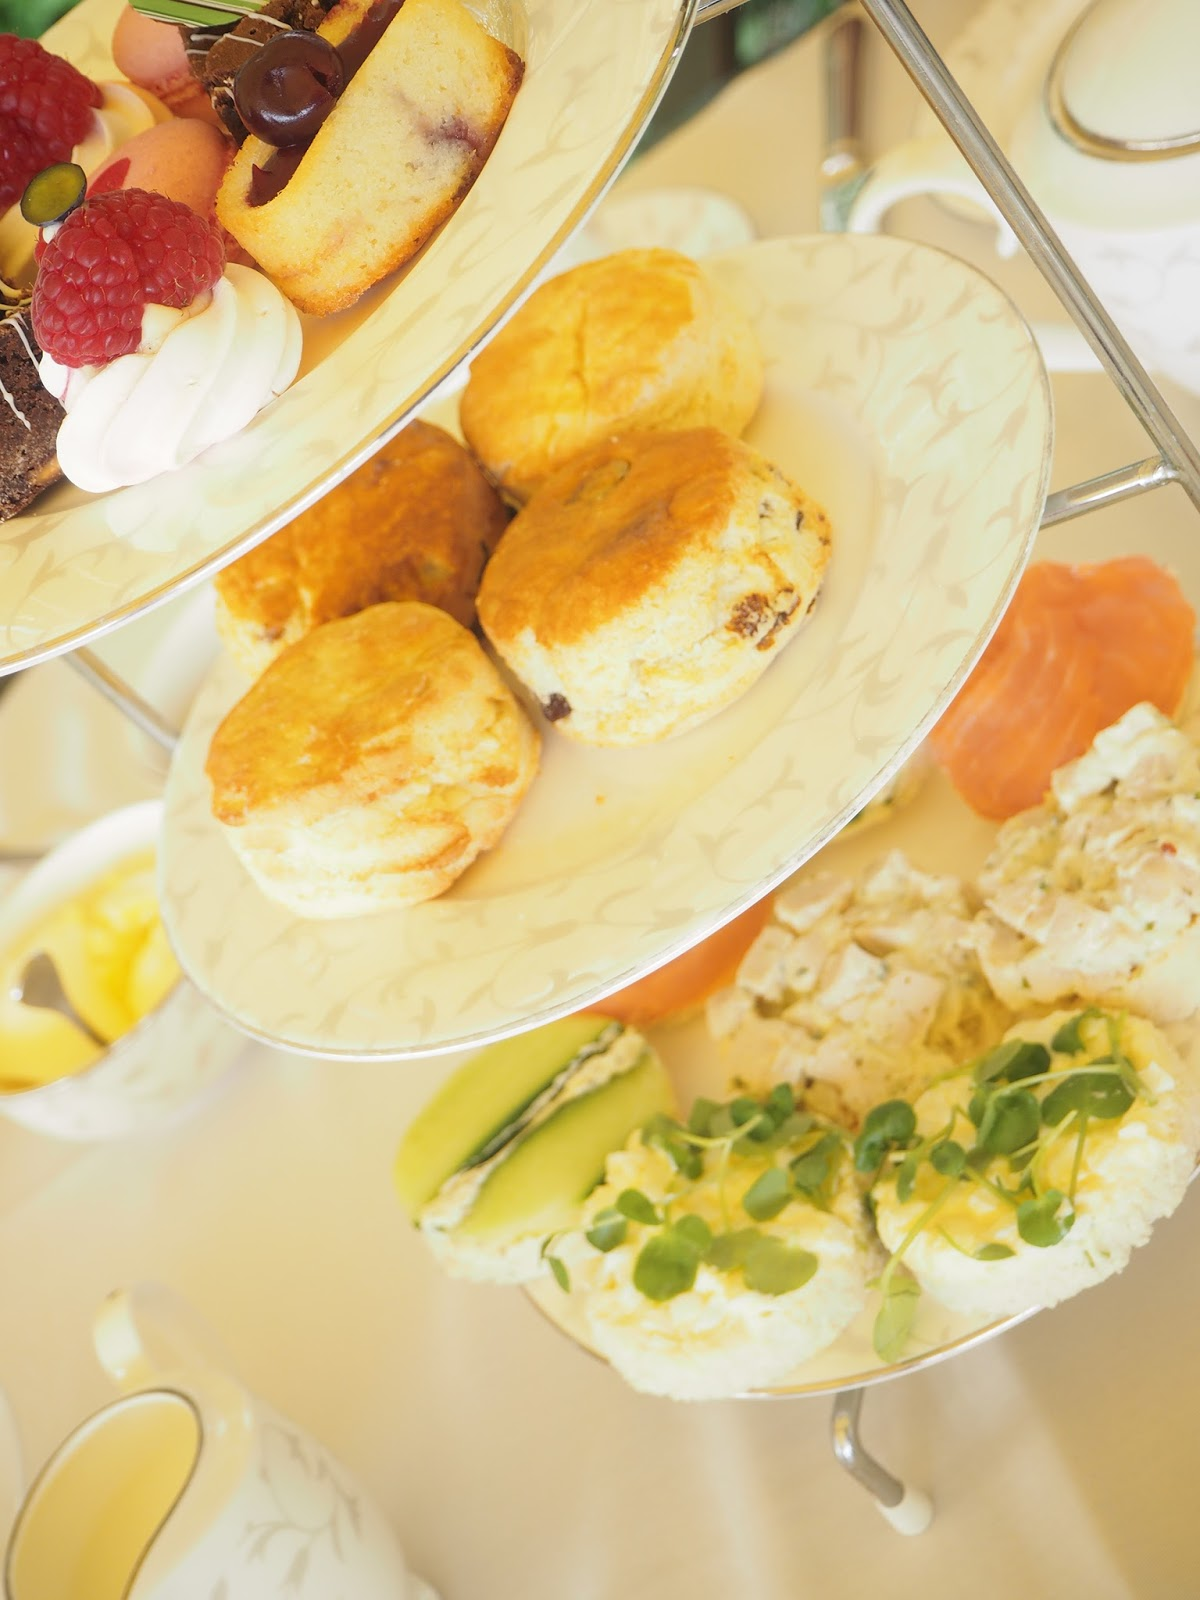 Afternoon tea review at South Lodge in Horsham - gluten free tea